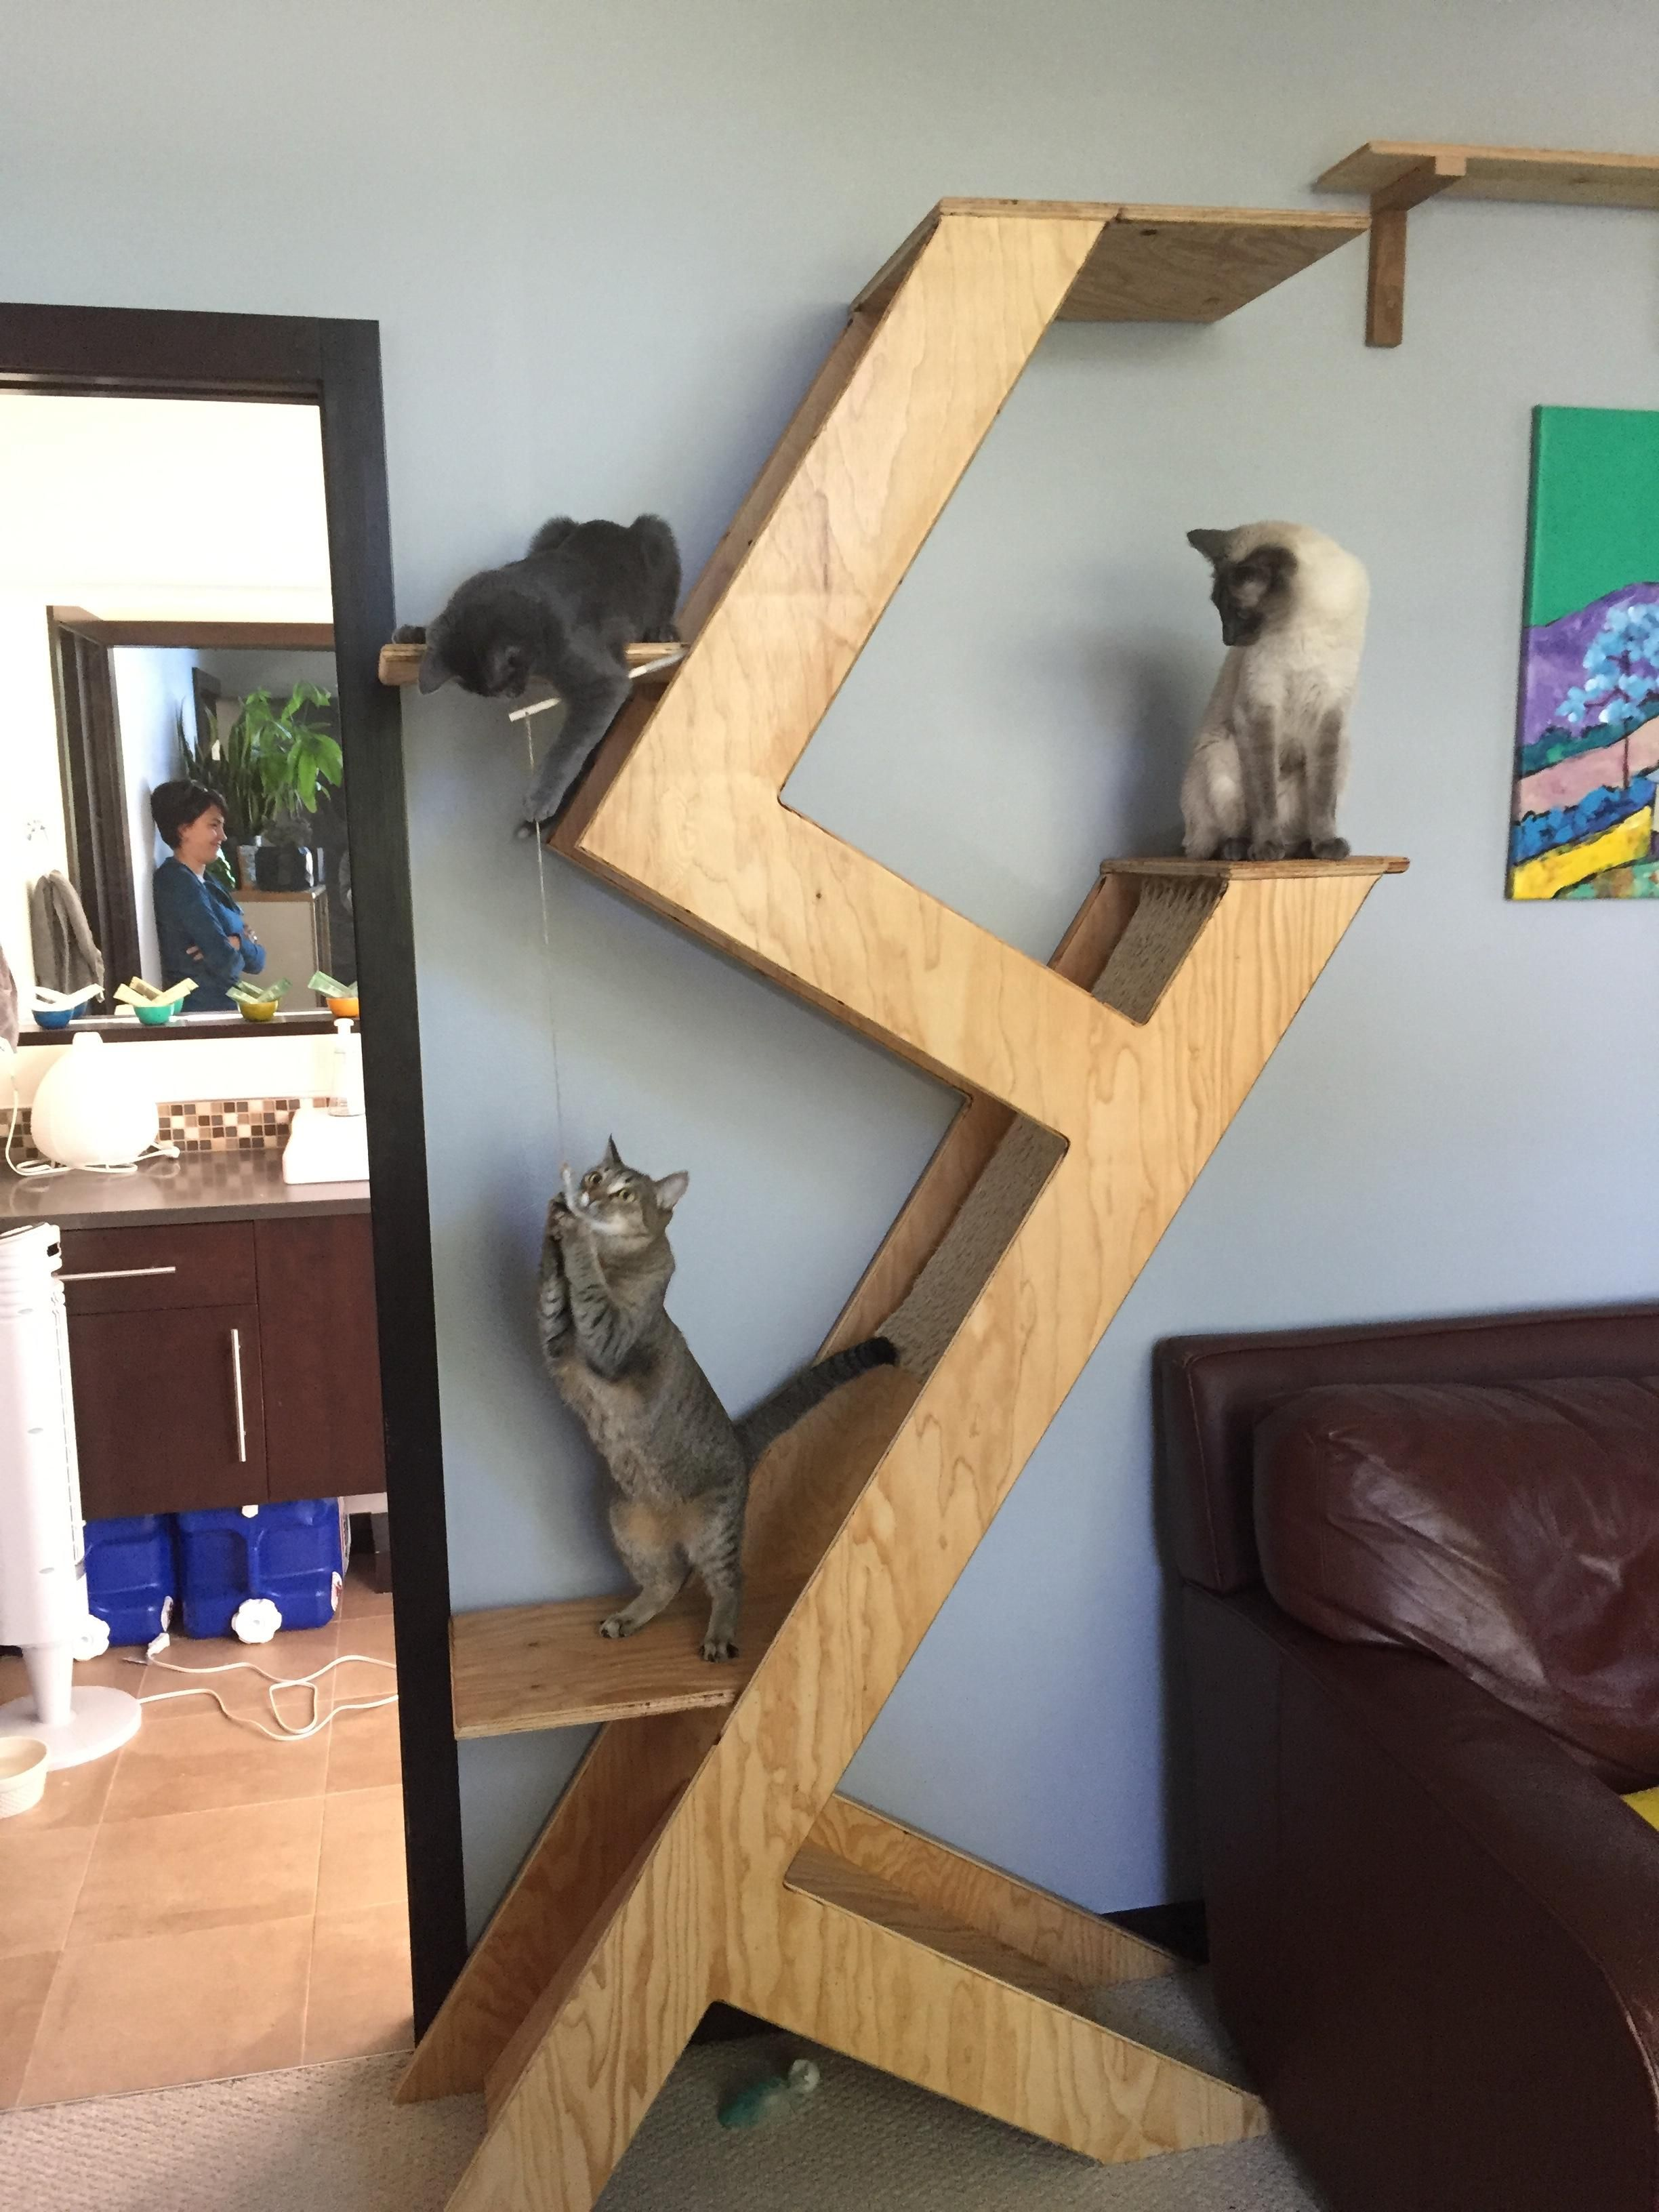 I Needed A Very Tall Cat Tower So I Decided To Try Something Totally Different Album On Imgur Pet Diy Projects Cat Tree Diy Cat Tree